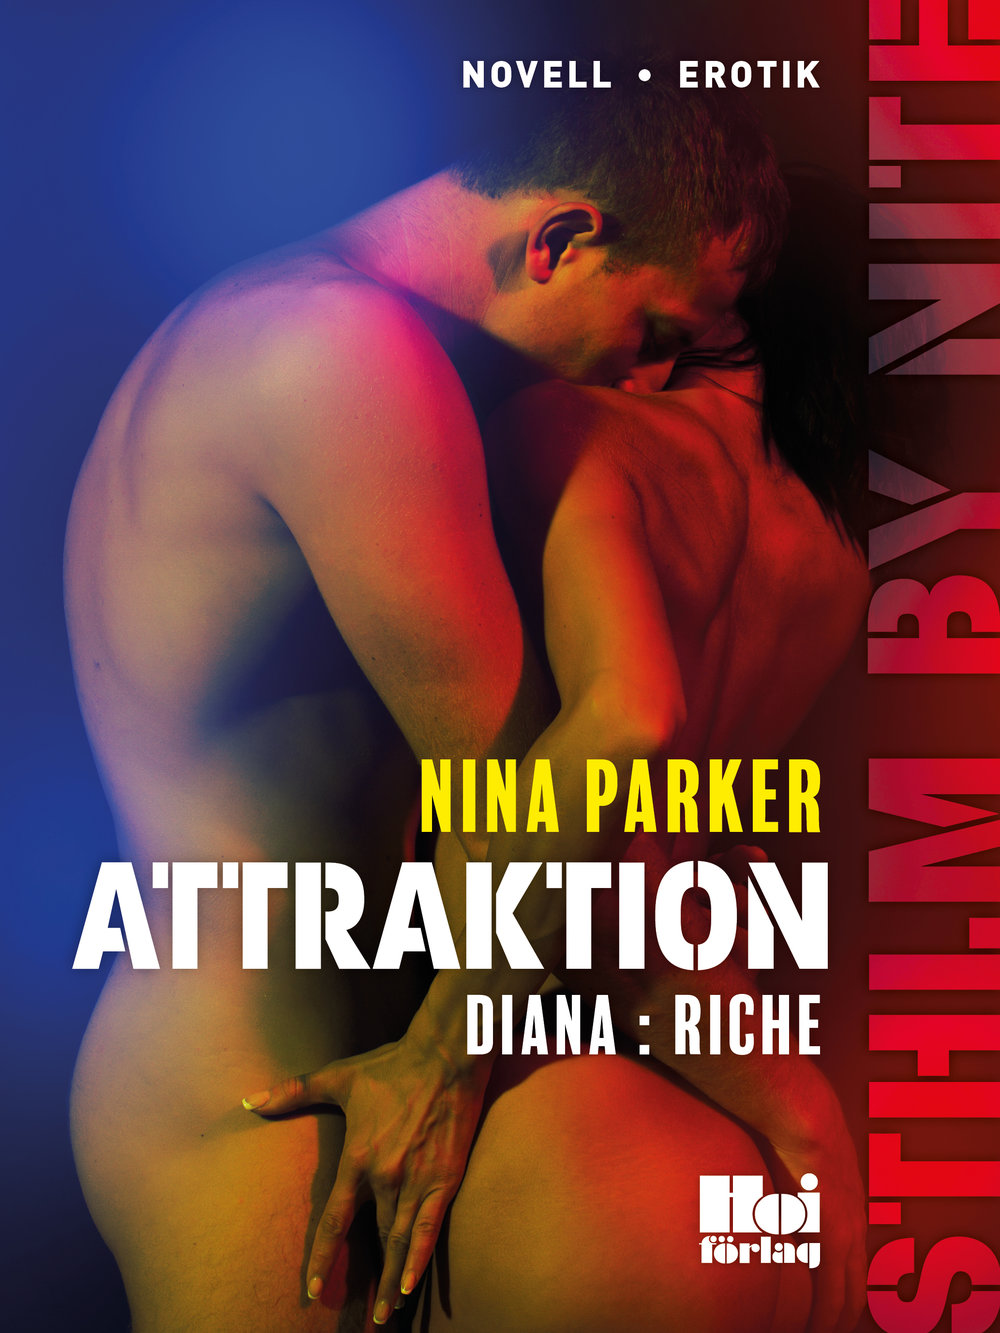 Attraktion - Diana : Riche